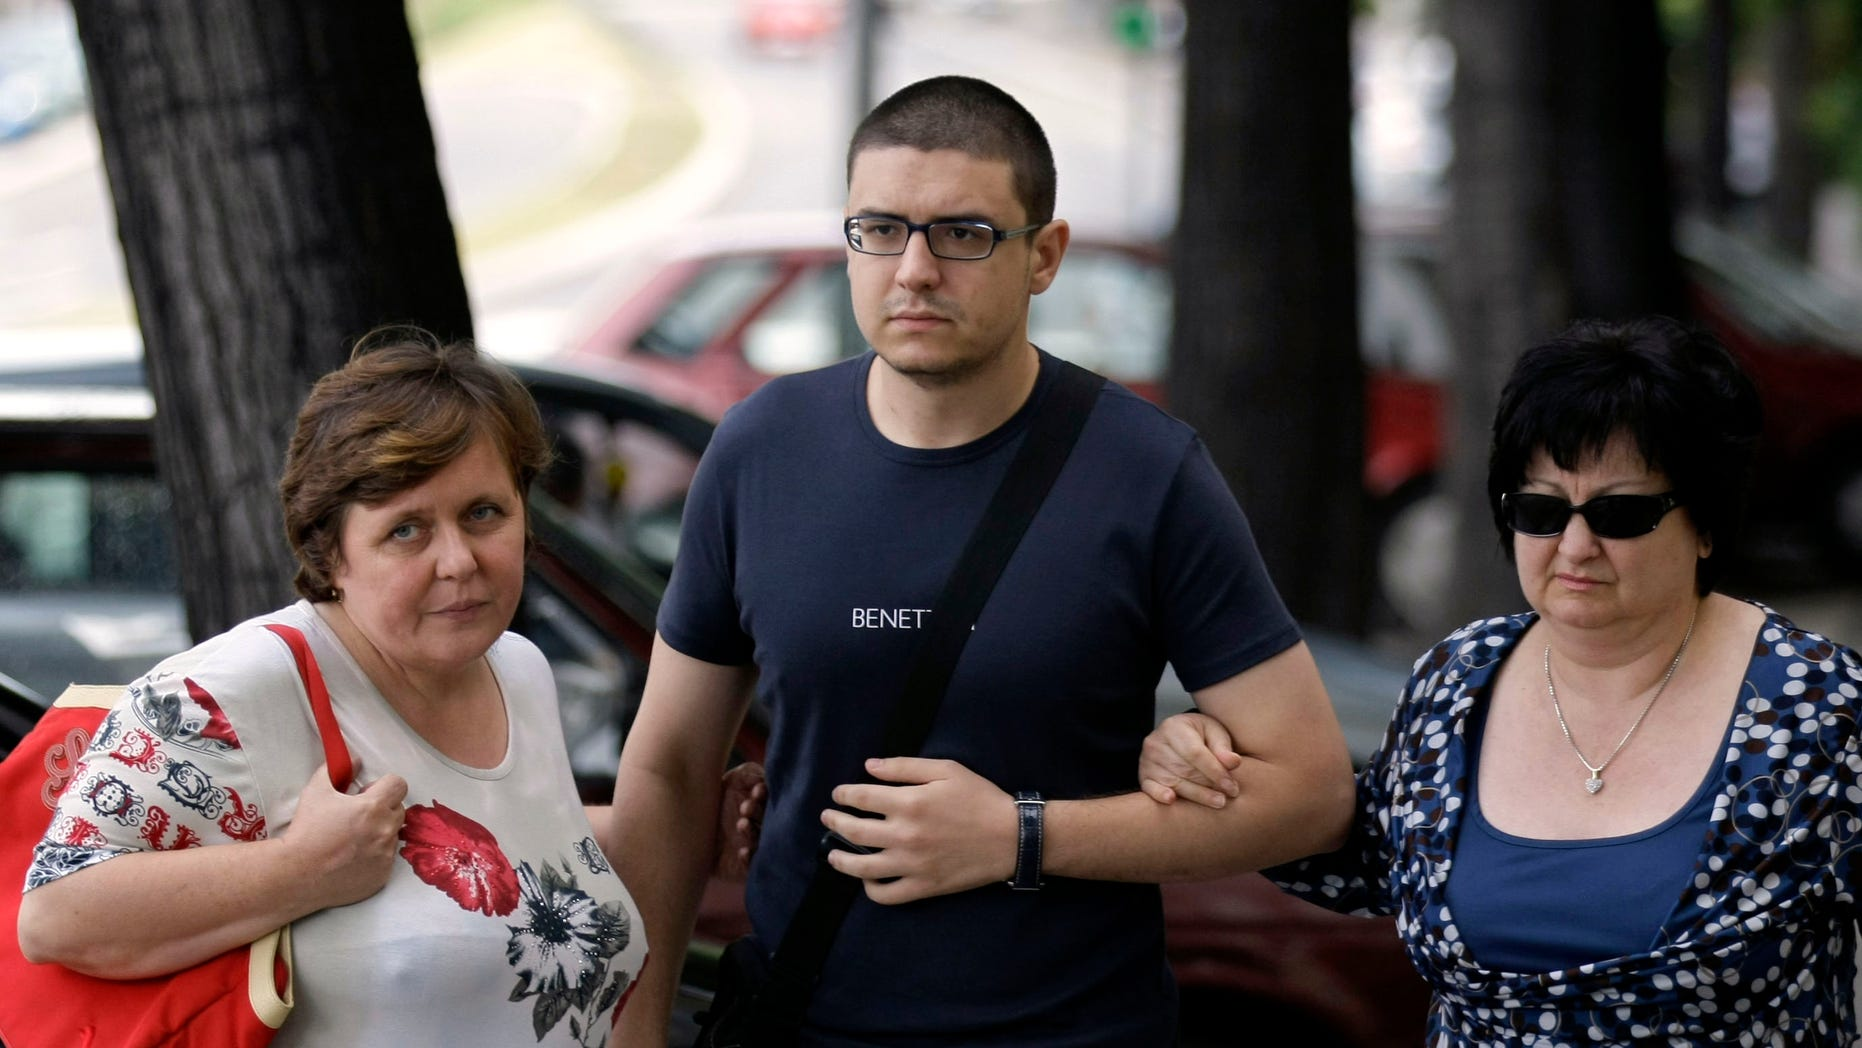 Goran Hadzic's son Srecko Hadzic, center, wife Zivka Hadzic, right and sister Goranka Meseldzija, arrive at the Special Court building in Belgrade, Serbia, Thursday, July 21, 2011.